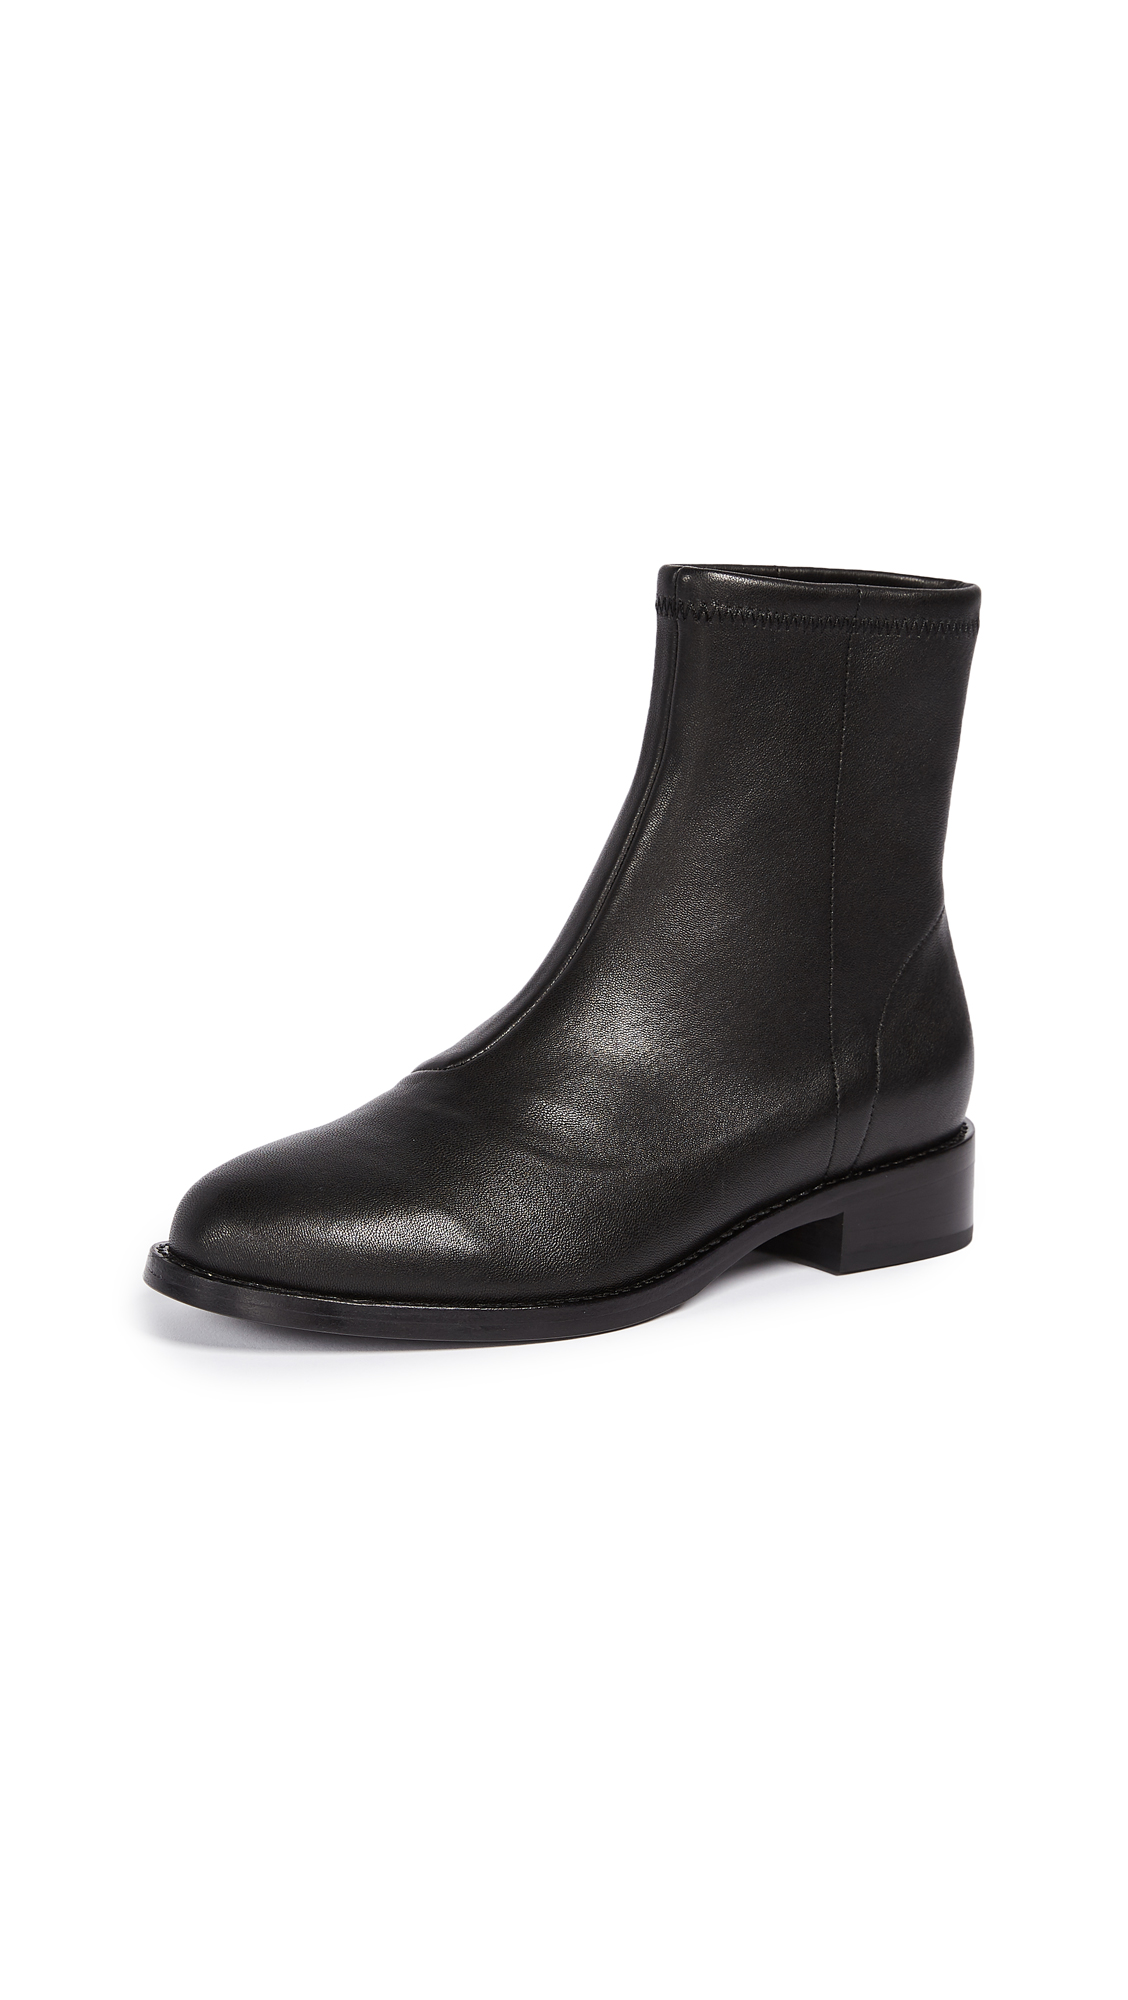 Opening Ceremony Dani Leather Flat Boots - Black